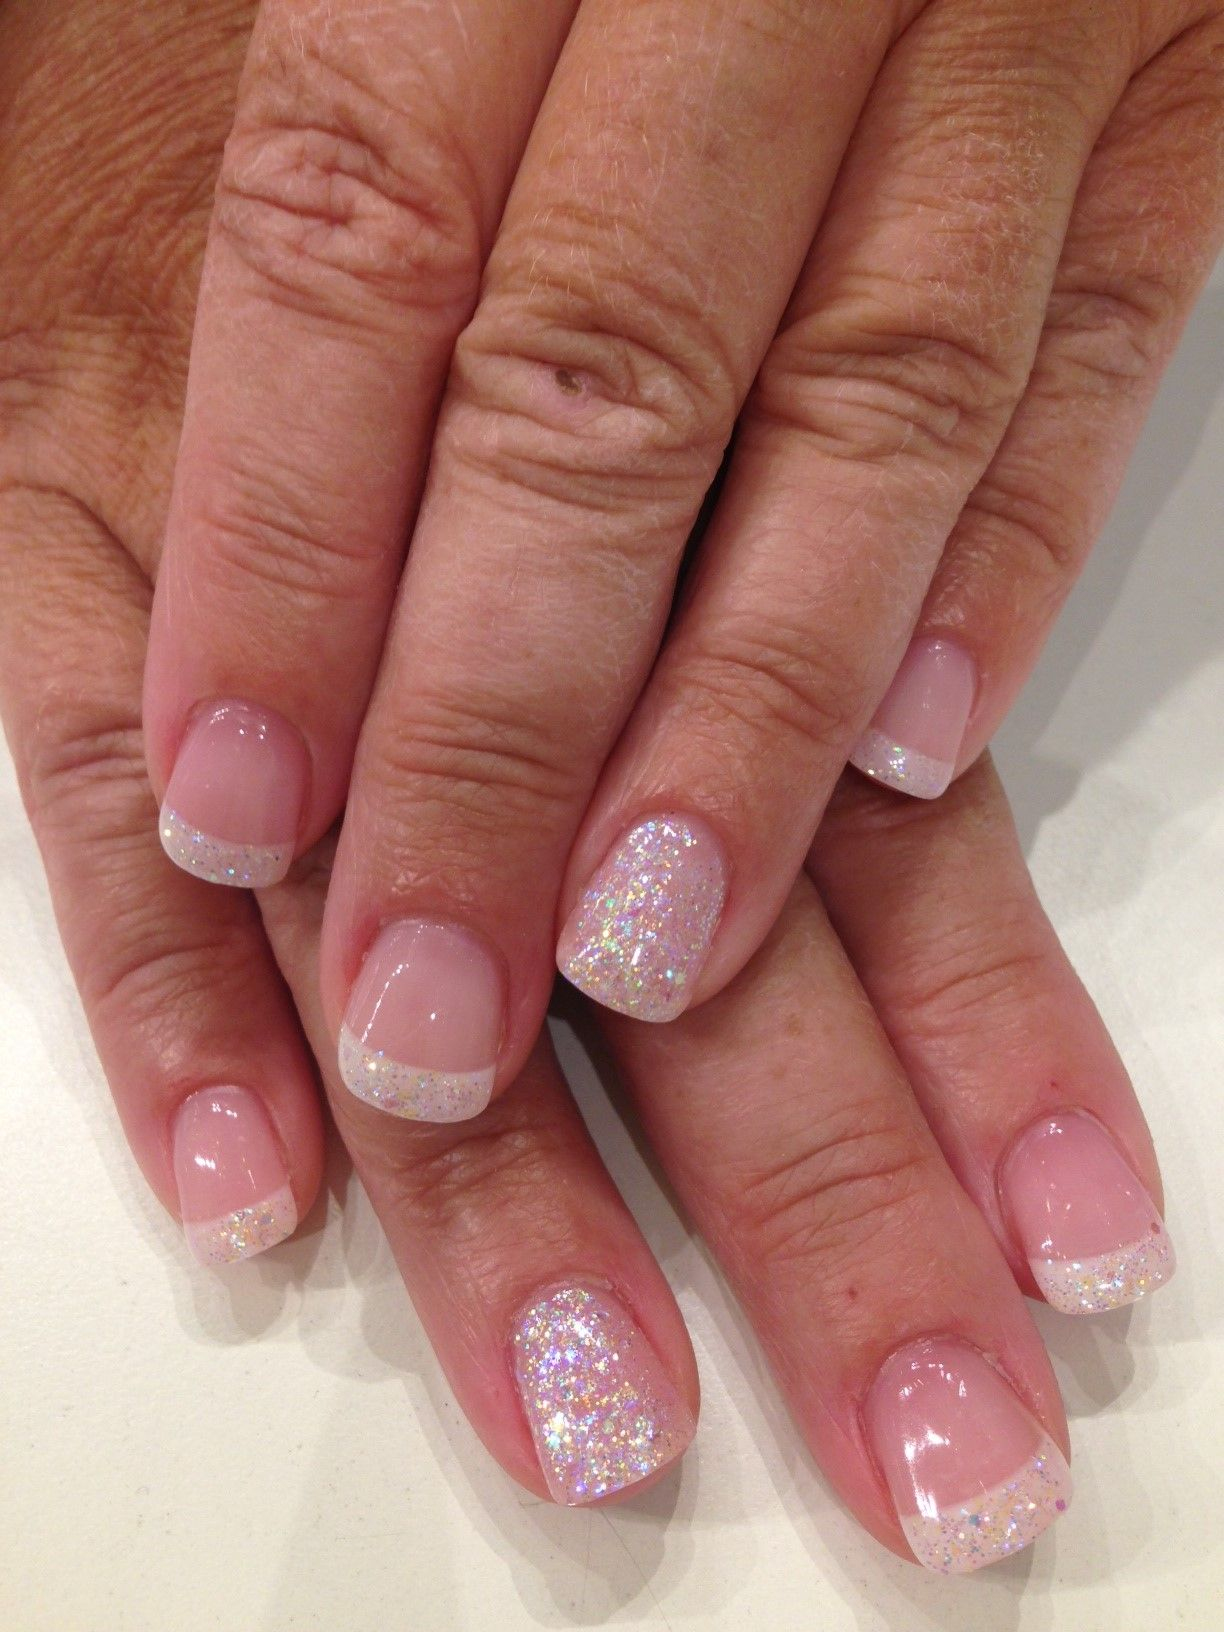 Bio Sculpture Gel French Manicure with overlay of iridescent glitter